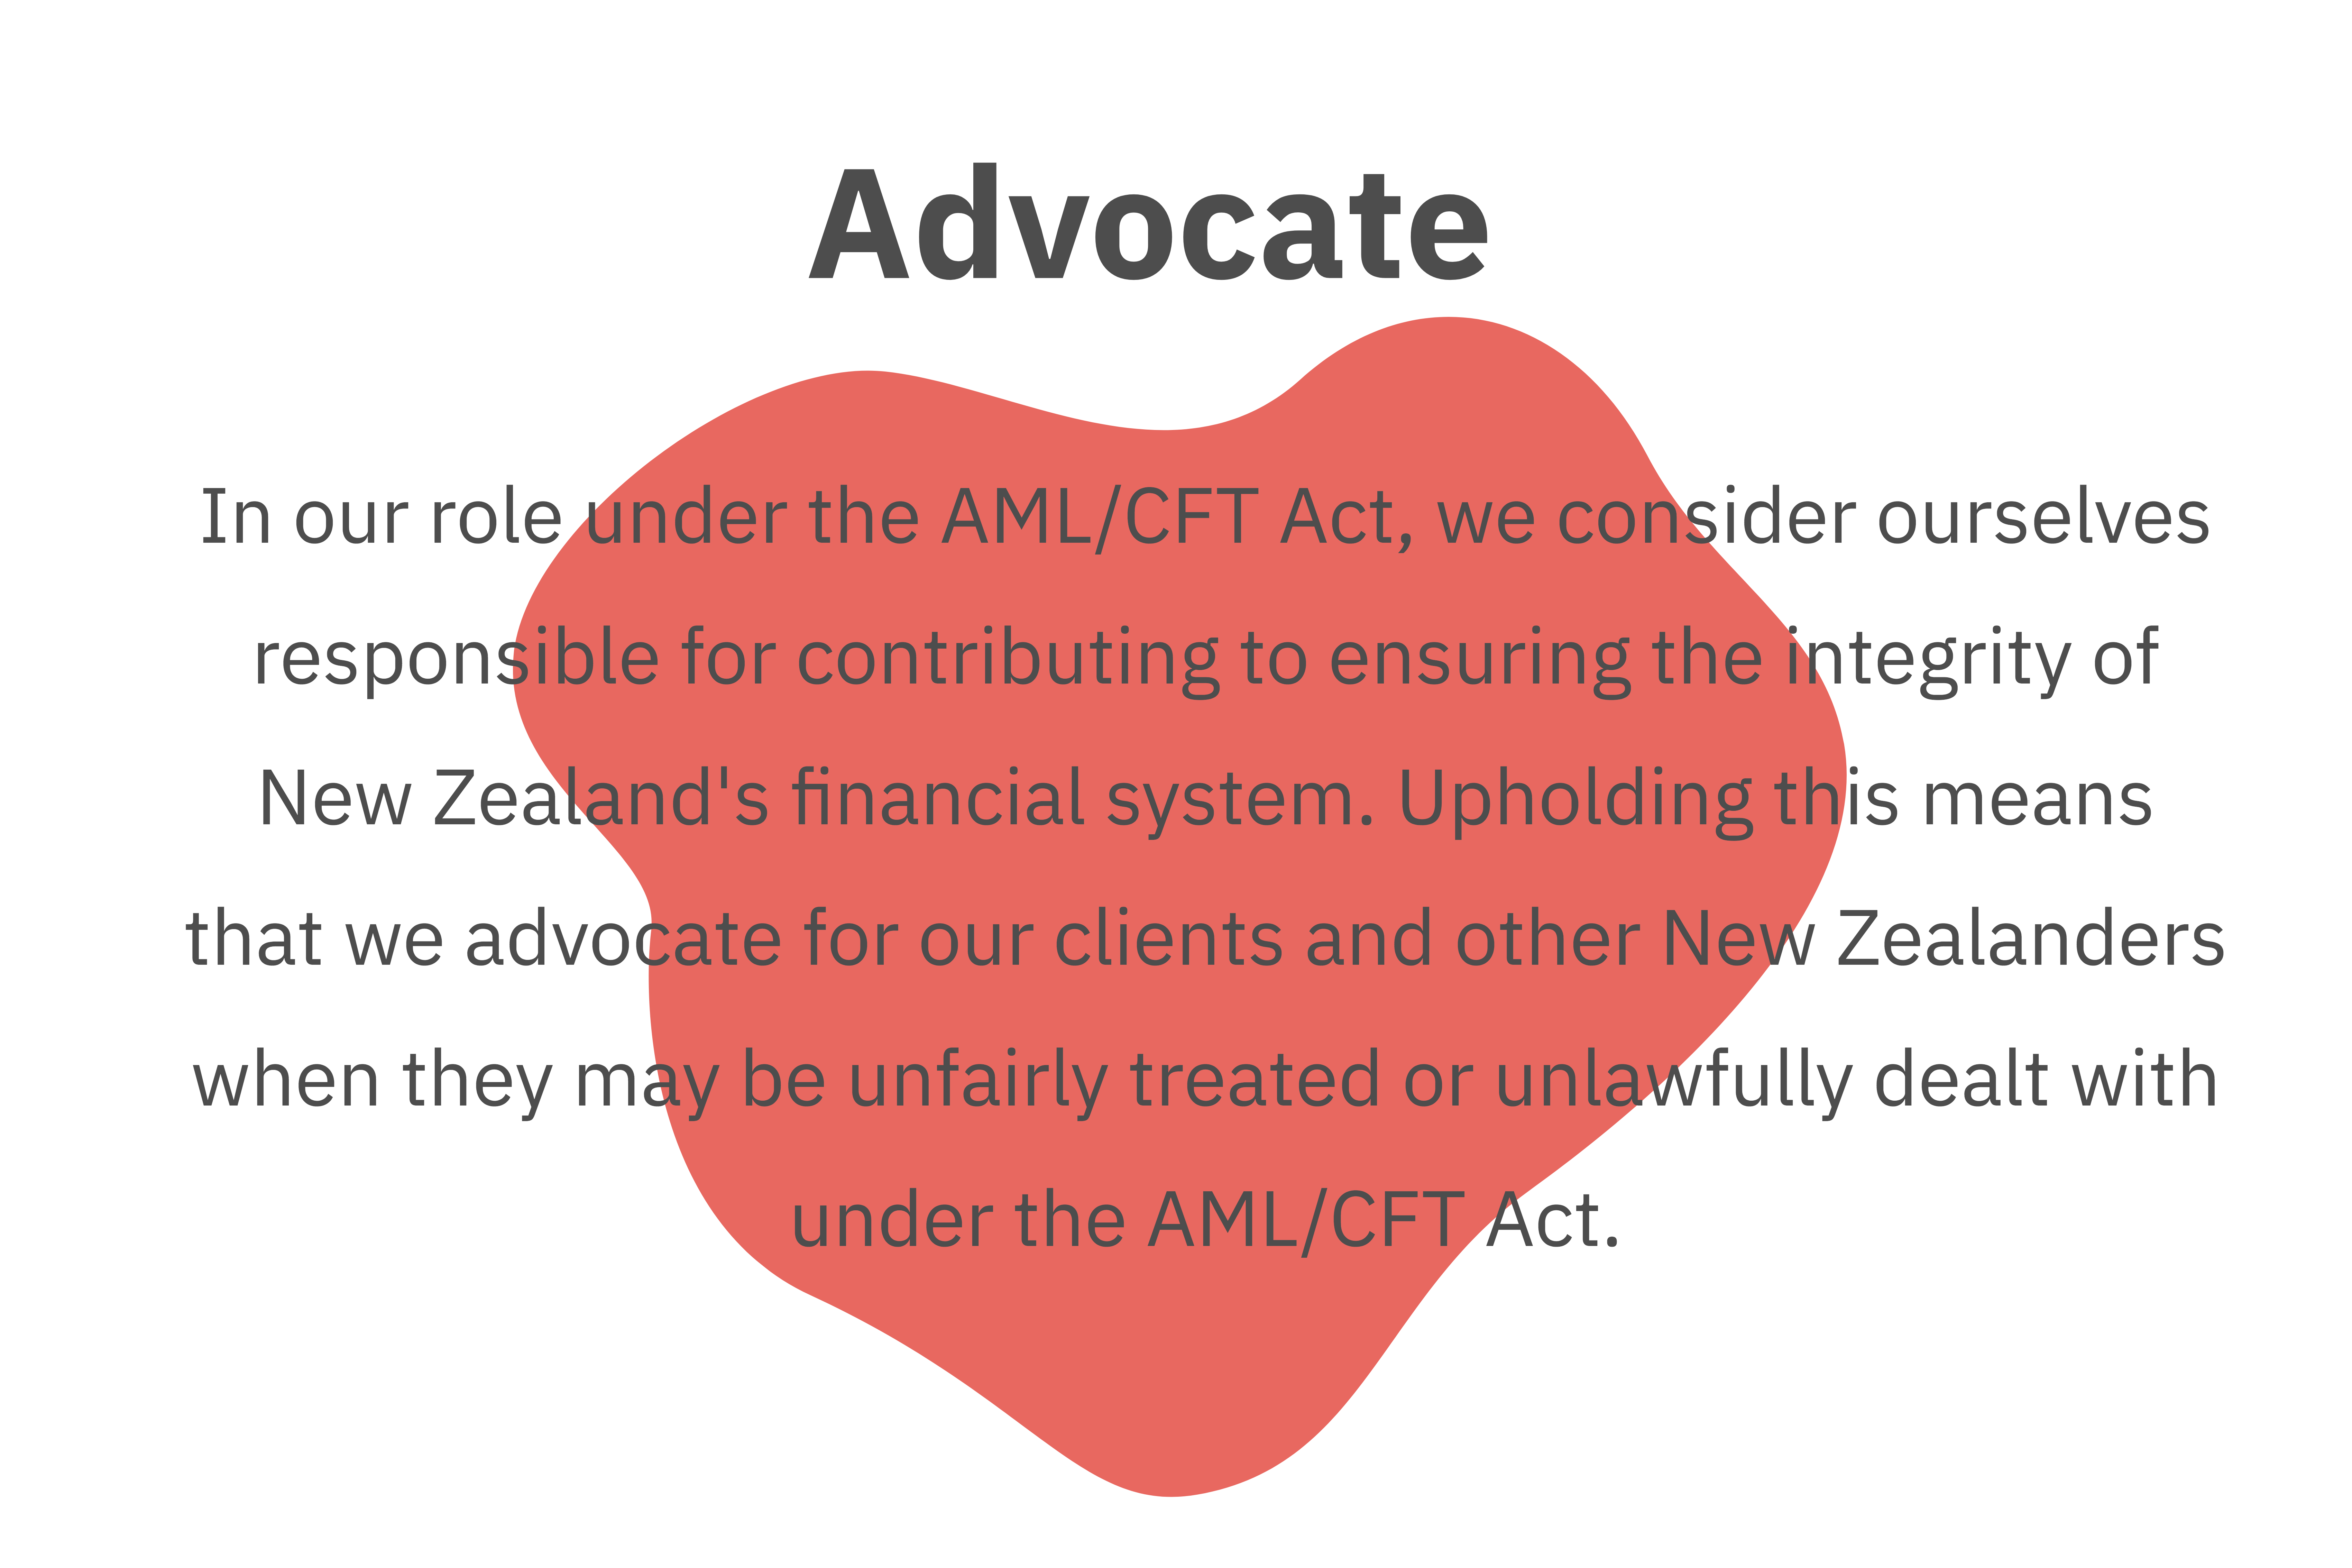 AML audit audits consultancy training advocacy nz